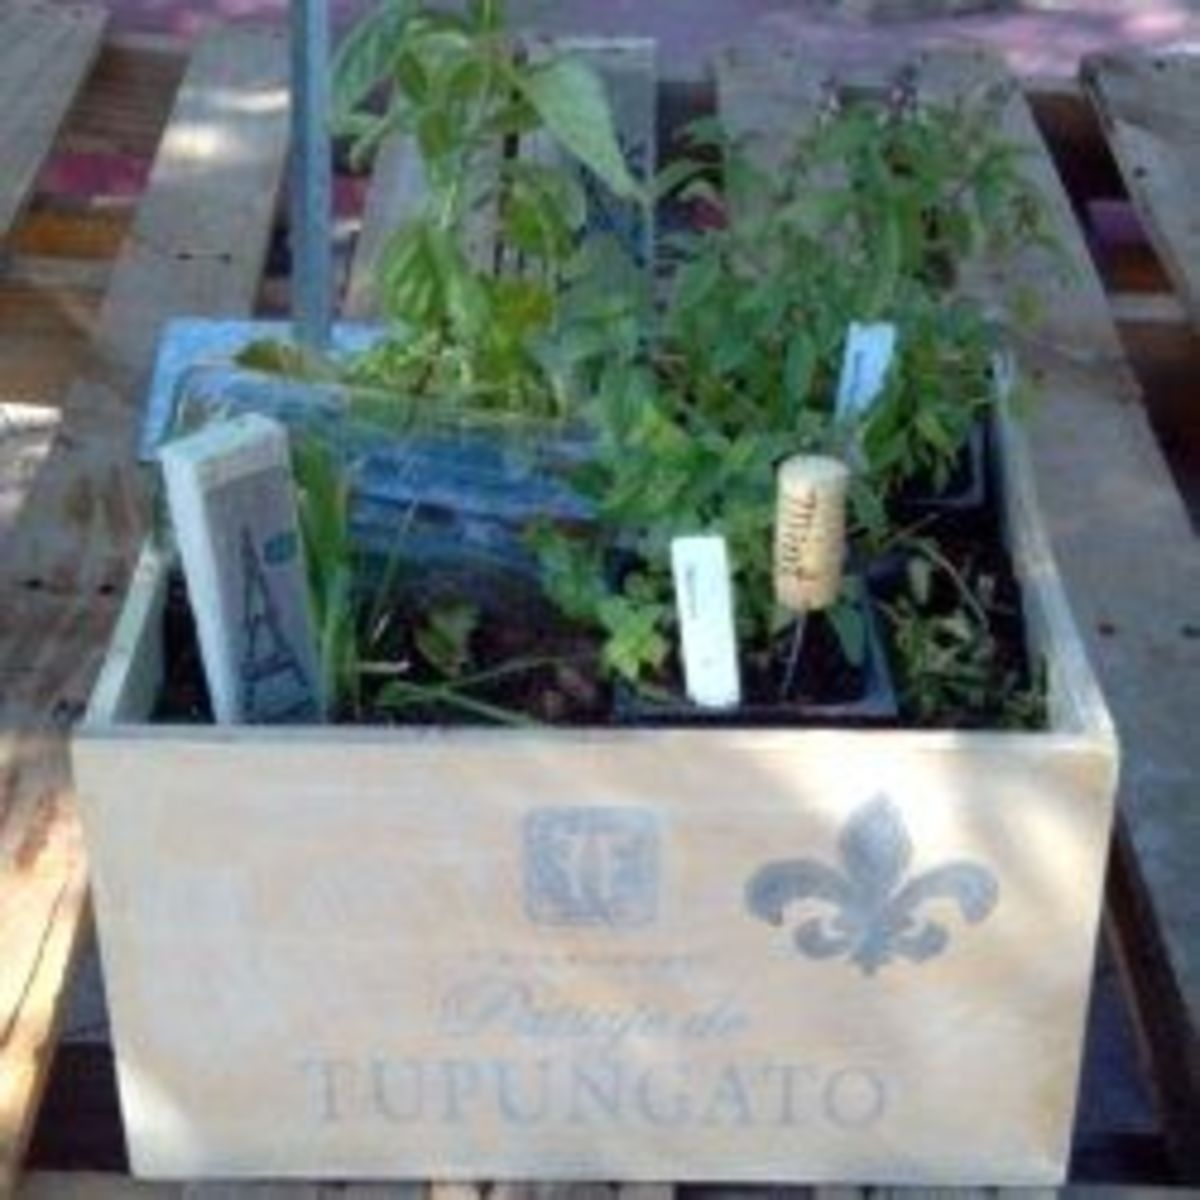 Add plant labels to your garden.